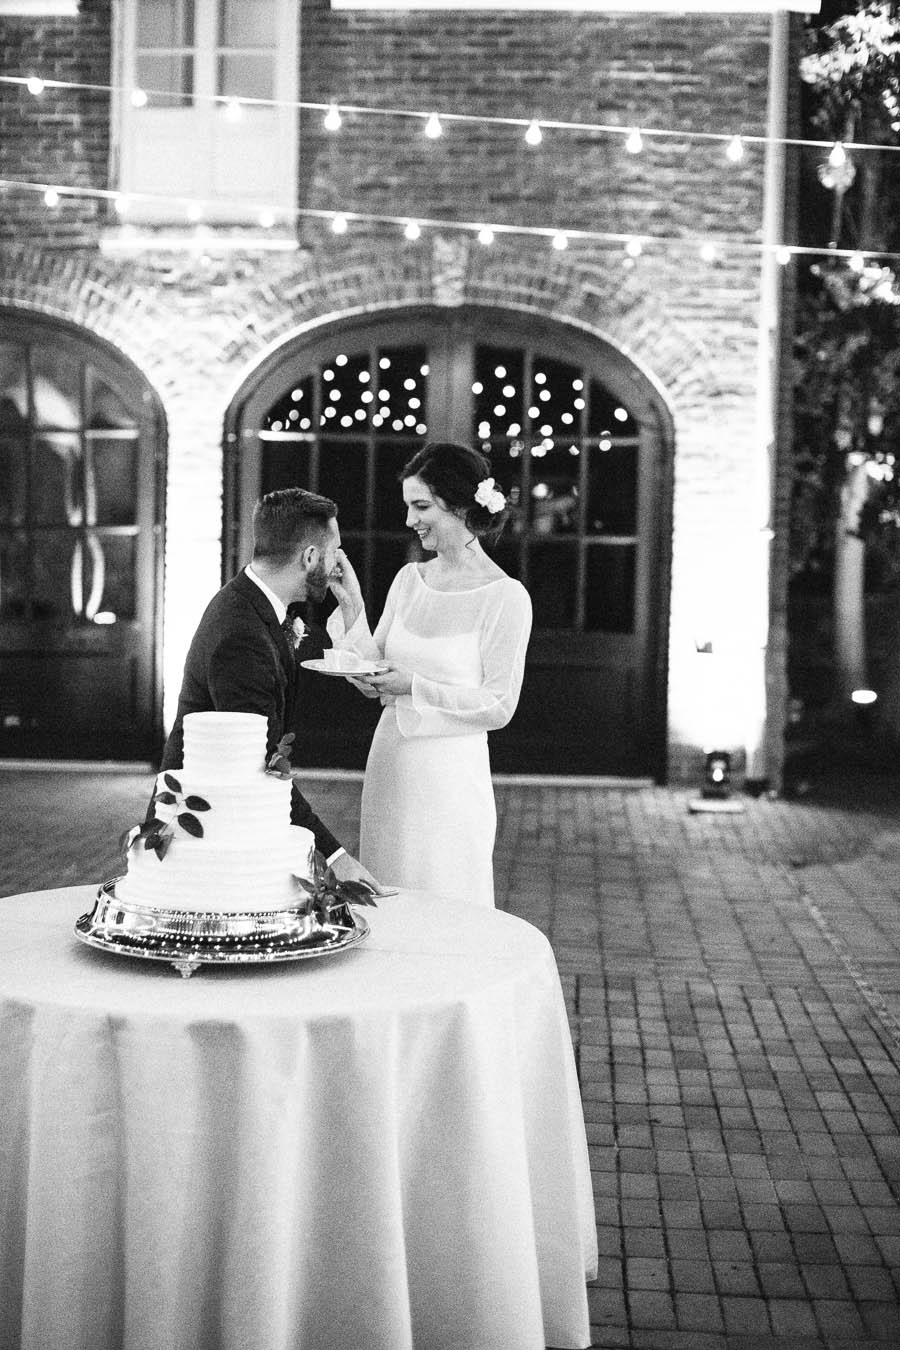 cheekwood film documentary wedding photographers nashville natural light autumn wedding classic ©2016abigailbobophotography-64.jpg